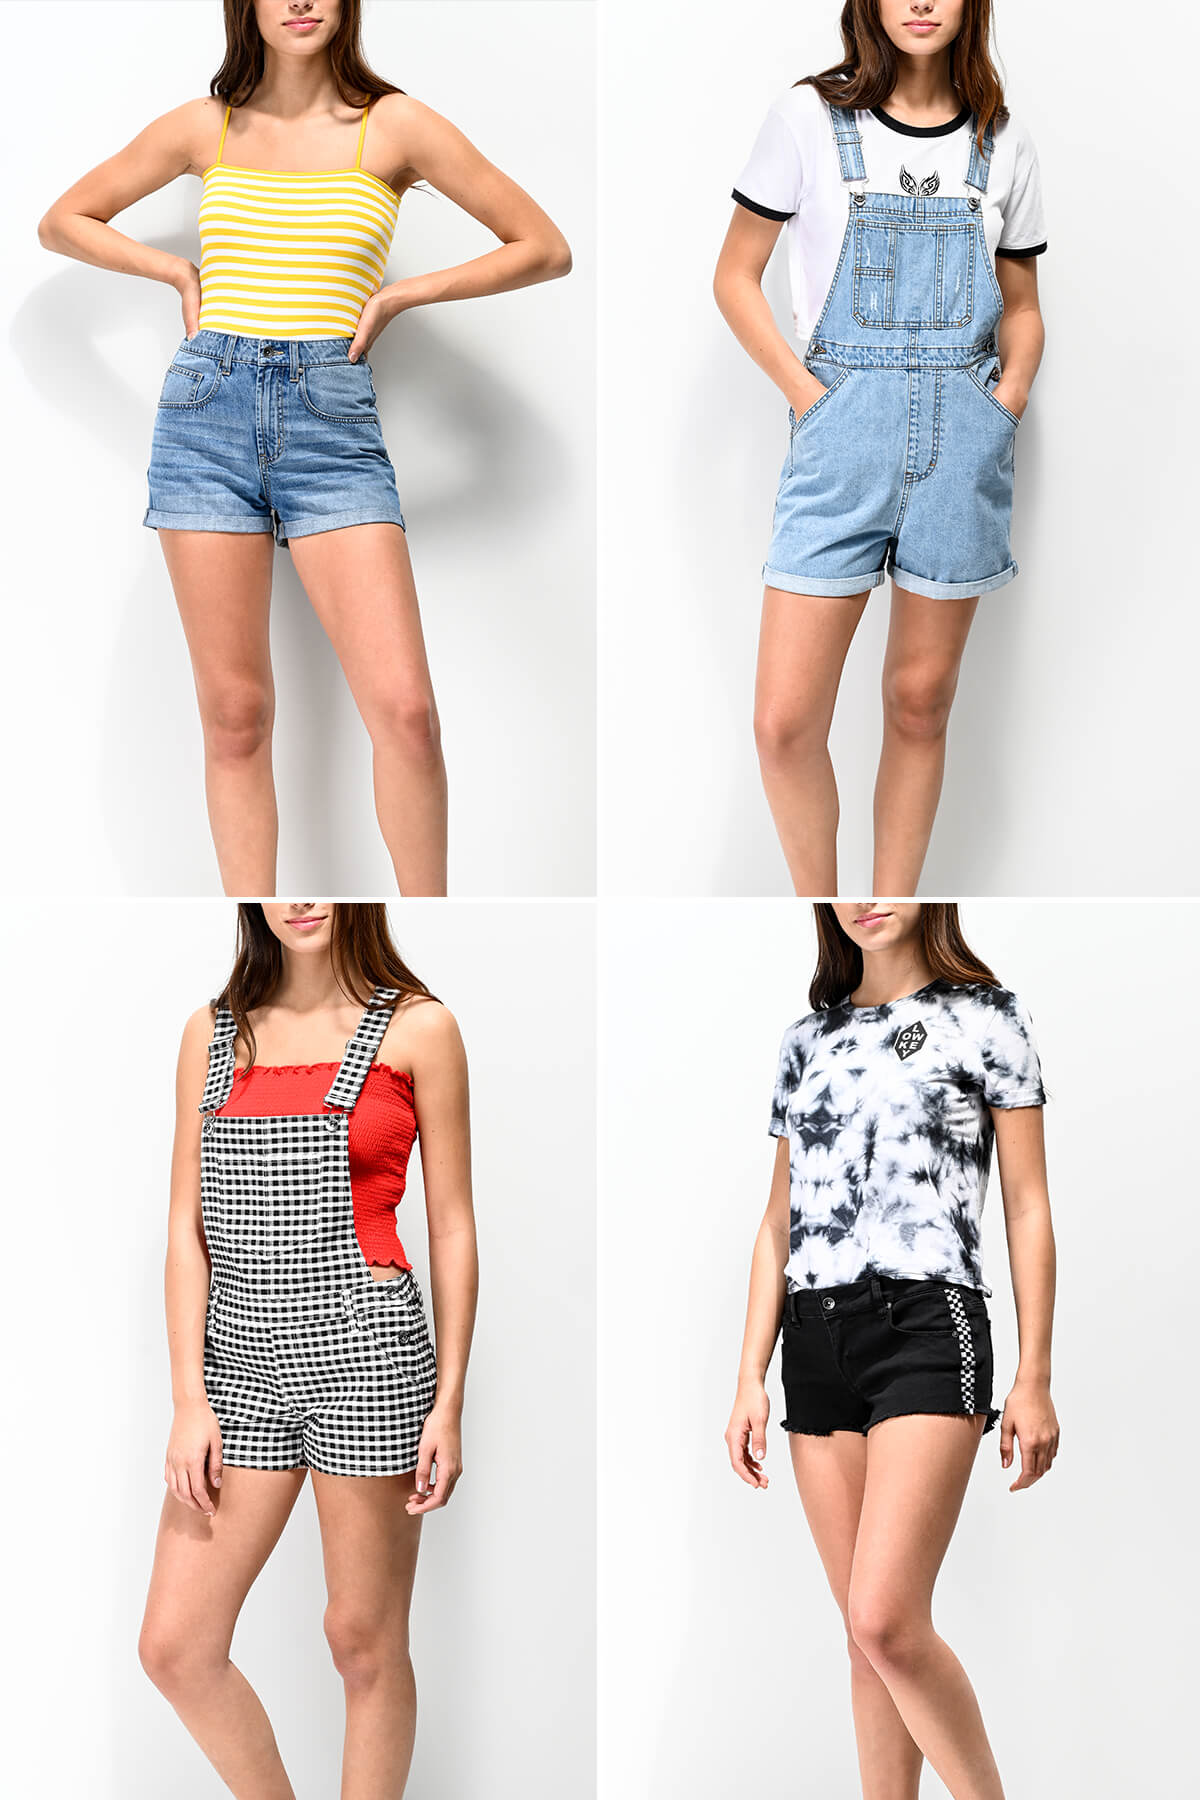 WOMEN'S SHORTS-NEW STYLES FOR THE SEASON-SHOP WOMEN'S SHORTS